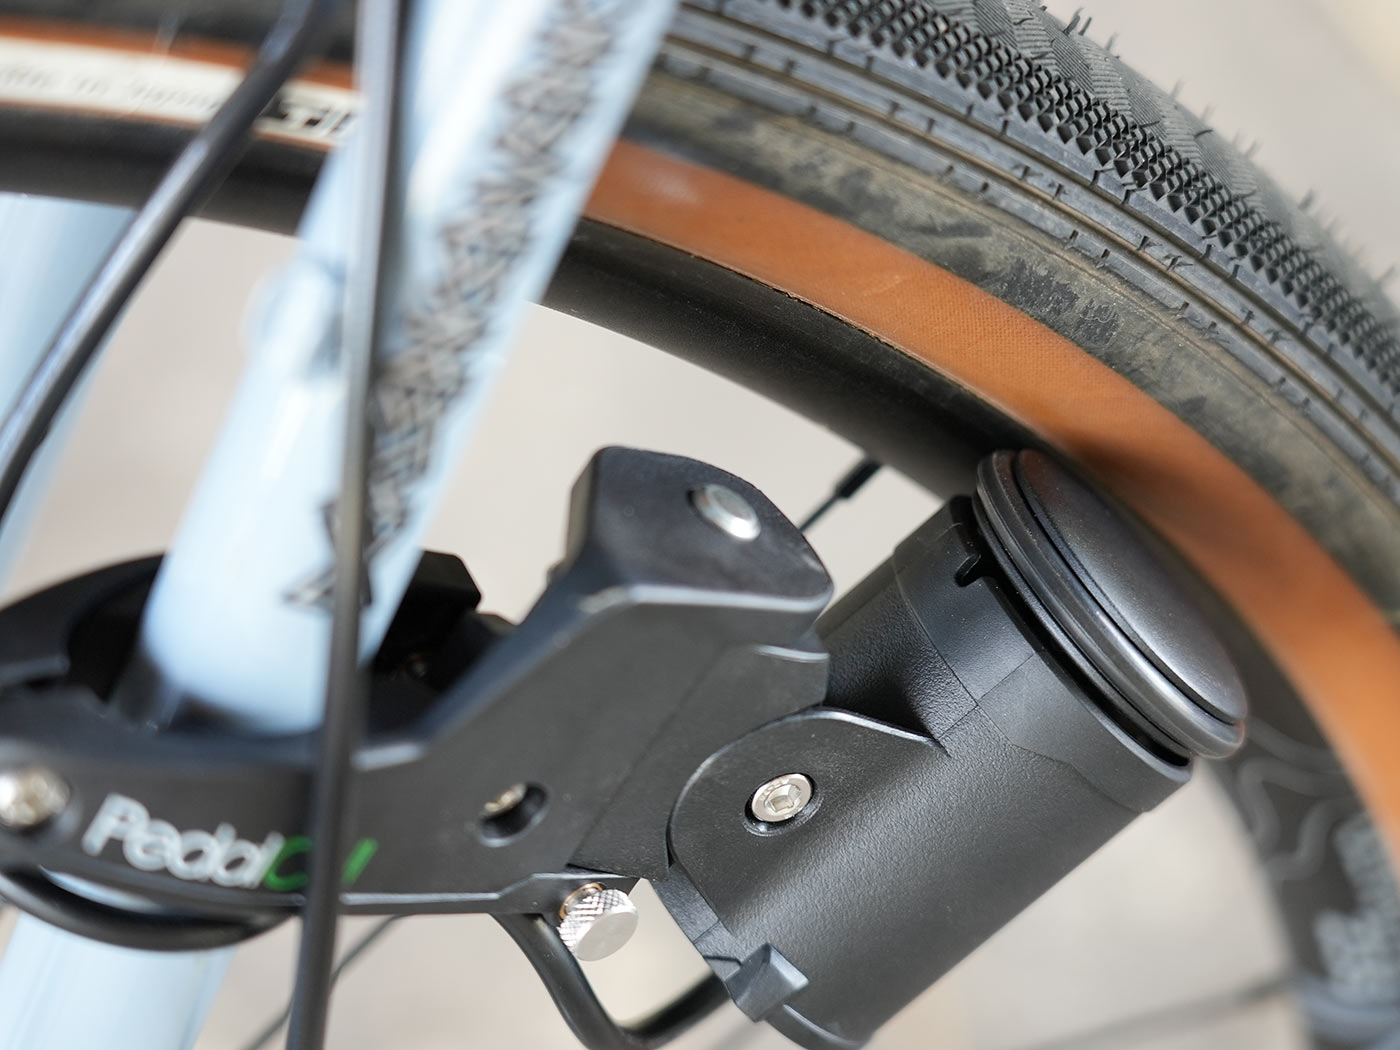 review of pedalcell rim dynamo shown closeup making contact with bicycle wheel rim